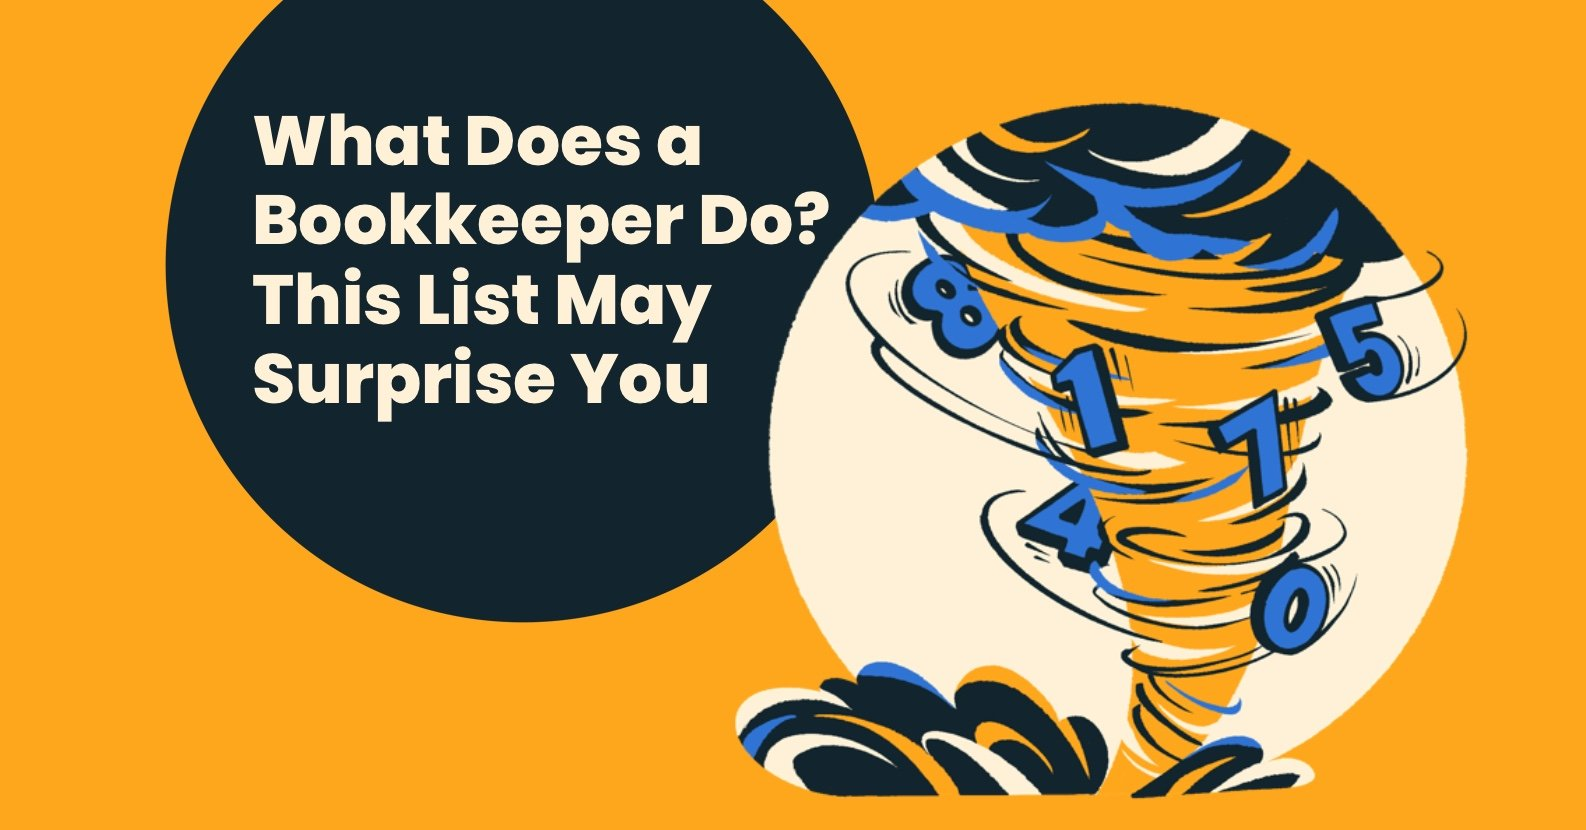 What Does a Bookkeeper Do? Hint: More Than You'd Expect